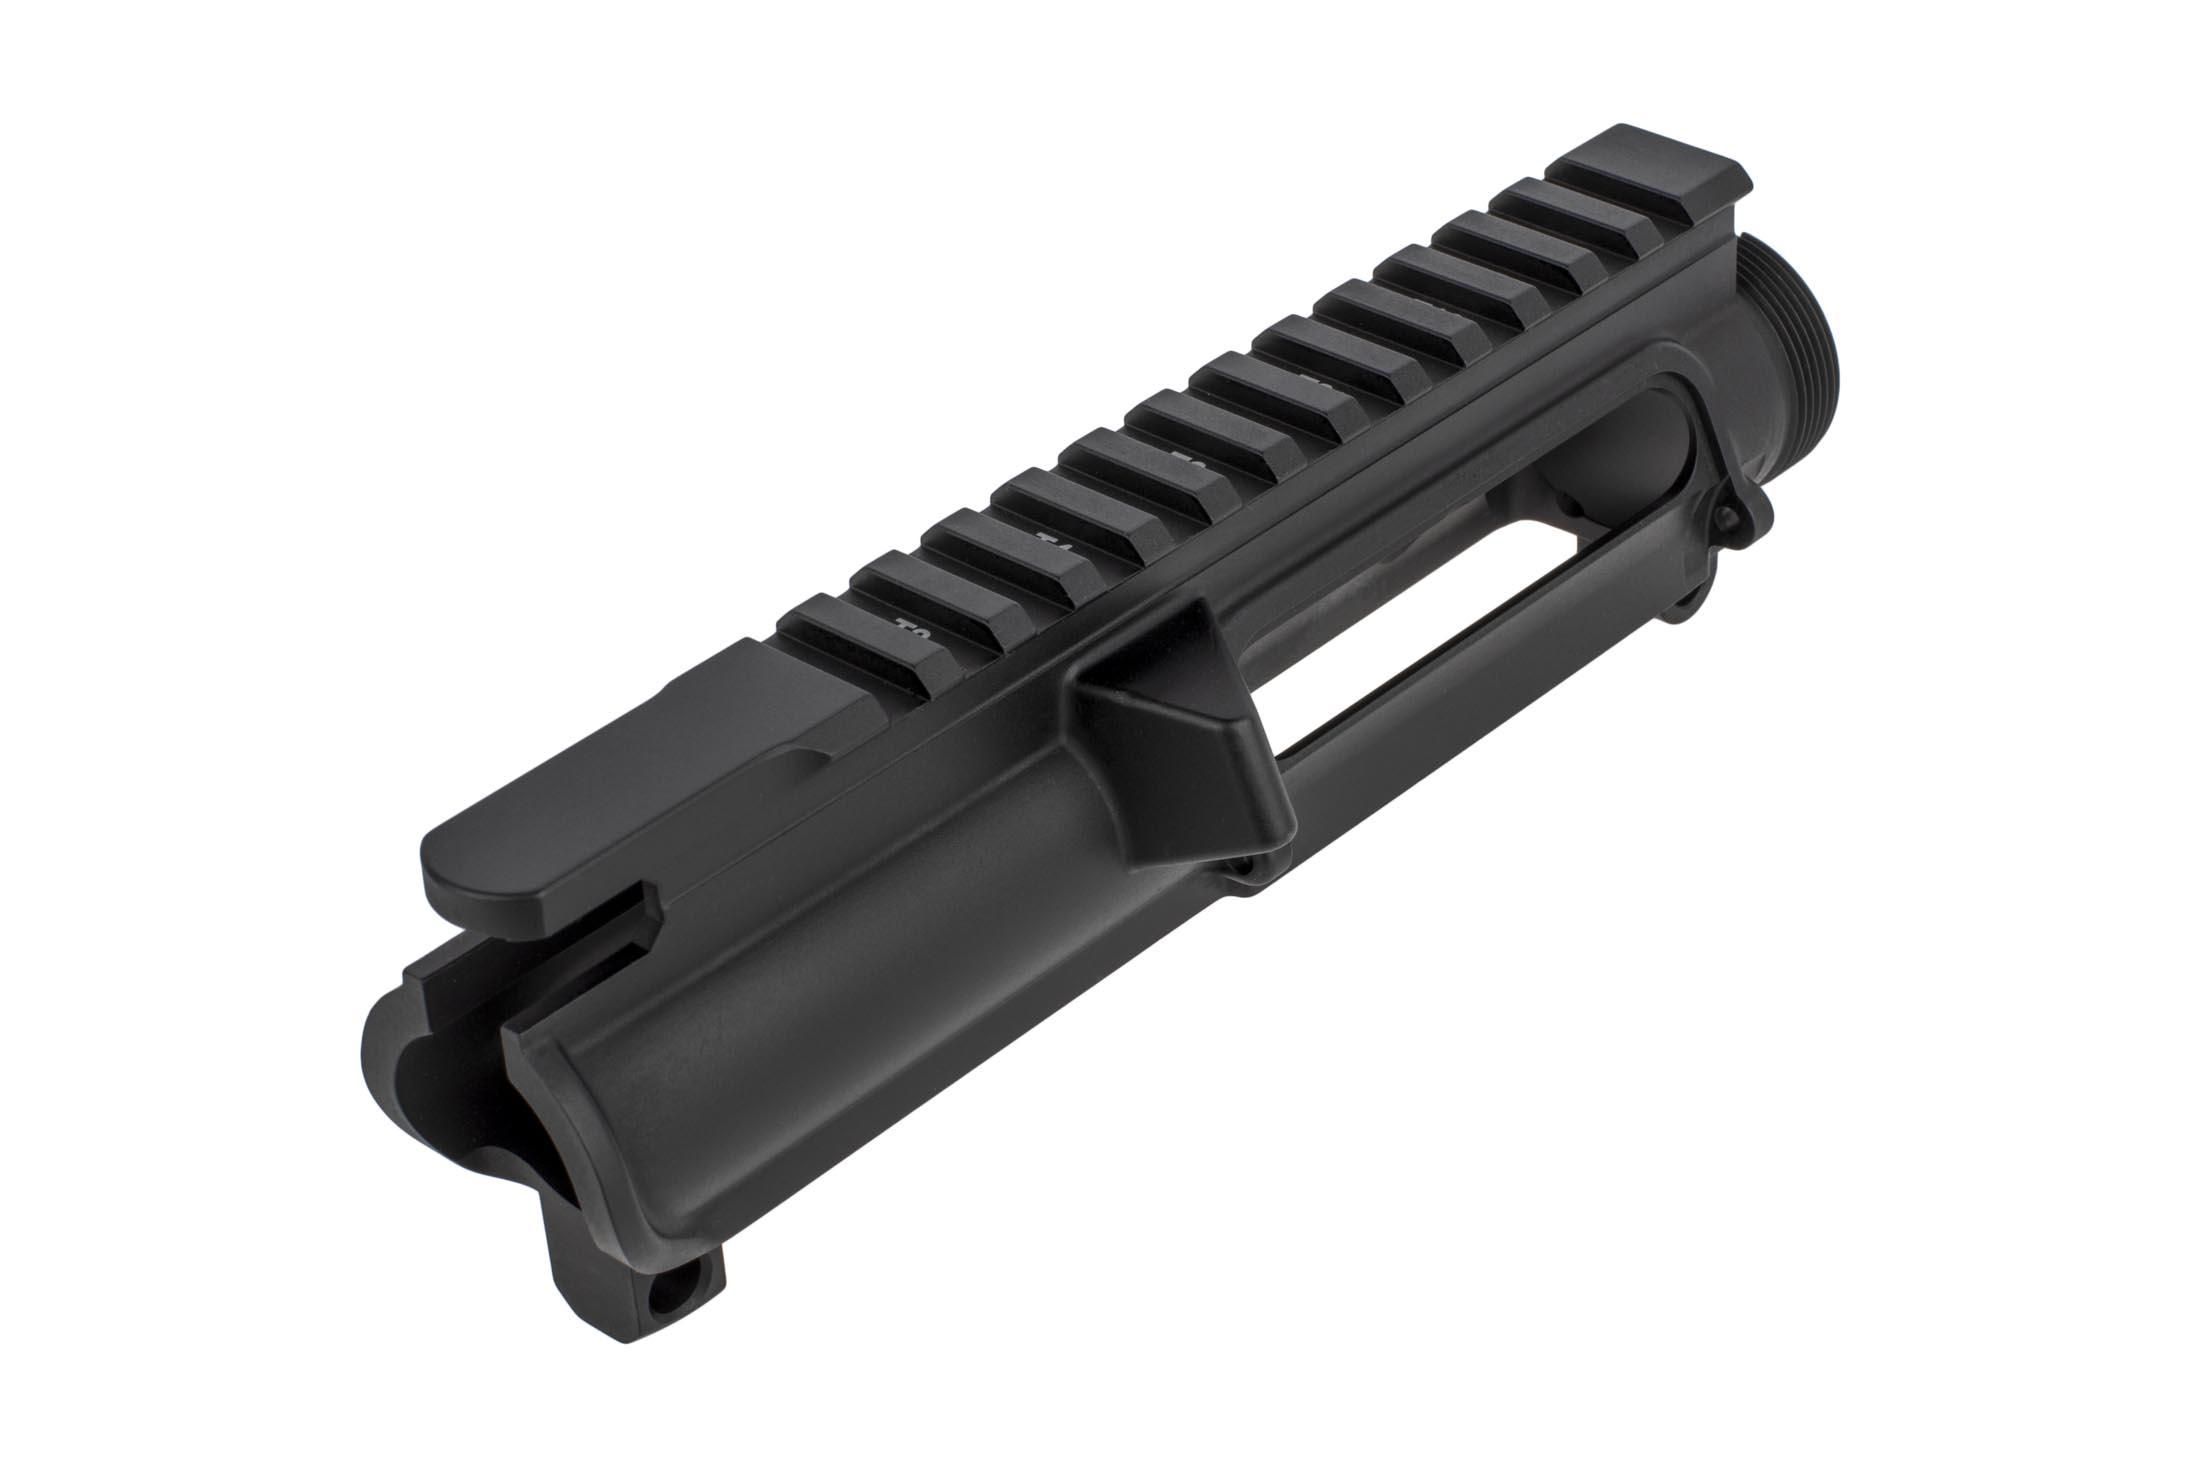 Aero Precision stripped AR15 upper with slick side is compatible with your favorite MIL-SPEC lower receivers and components